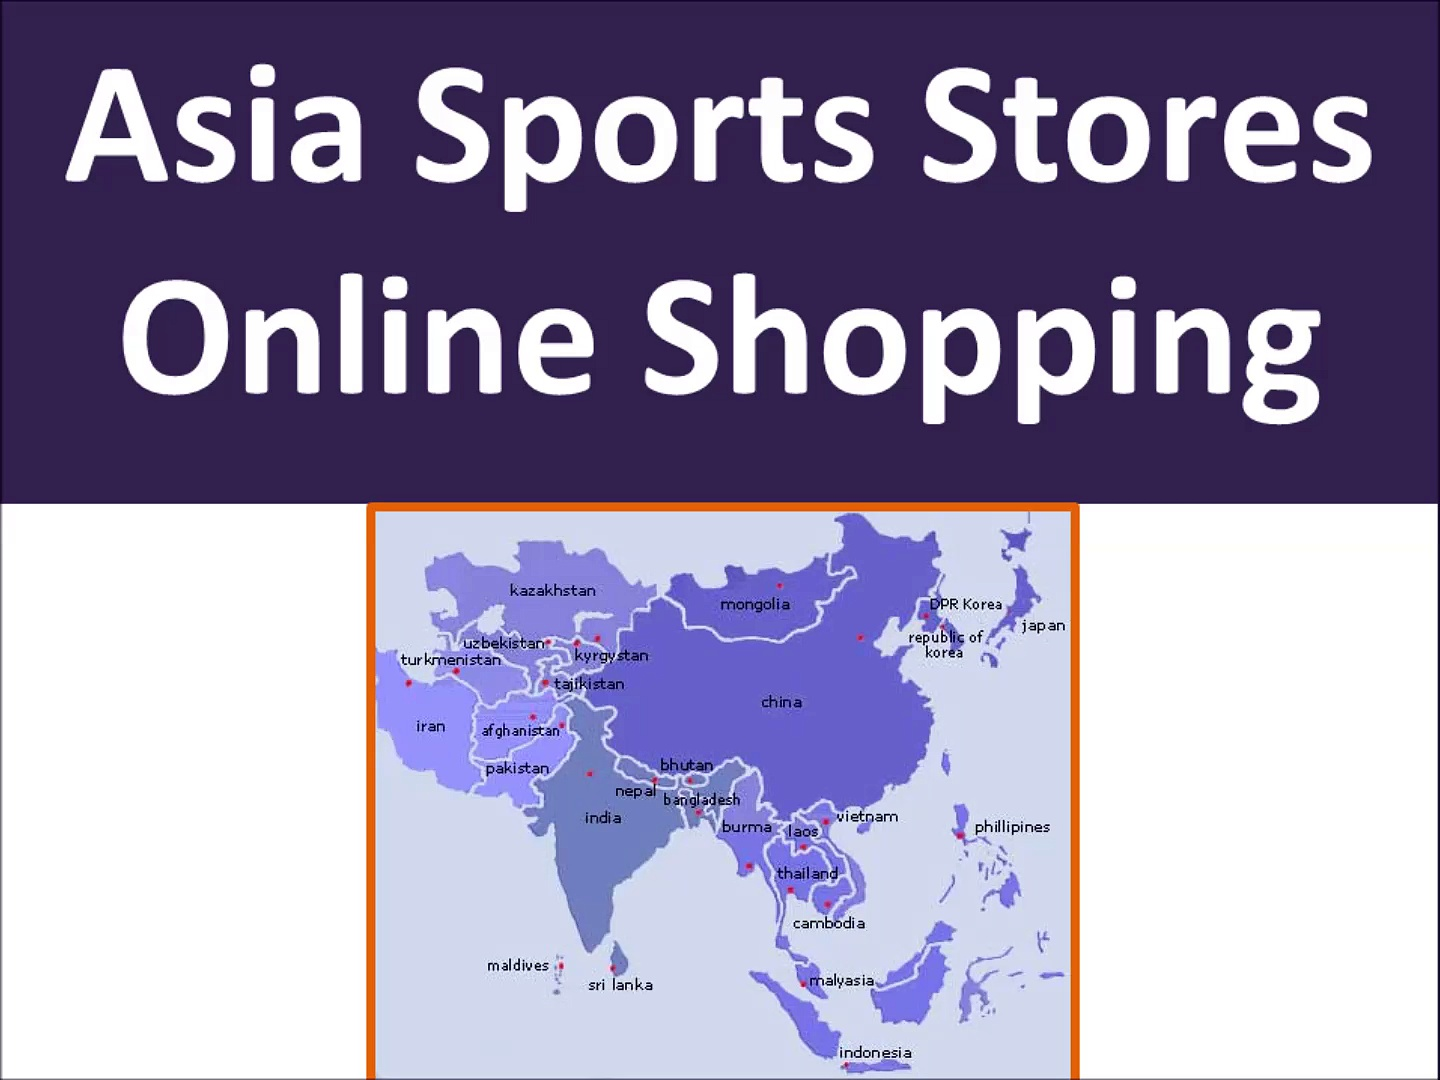 Asia Sports Stores Online Shopping